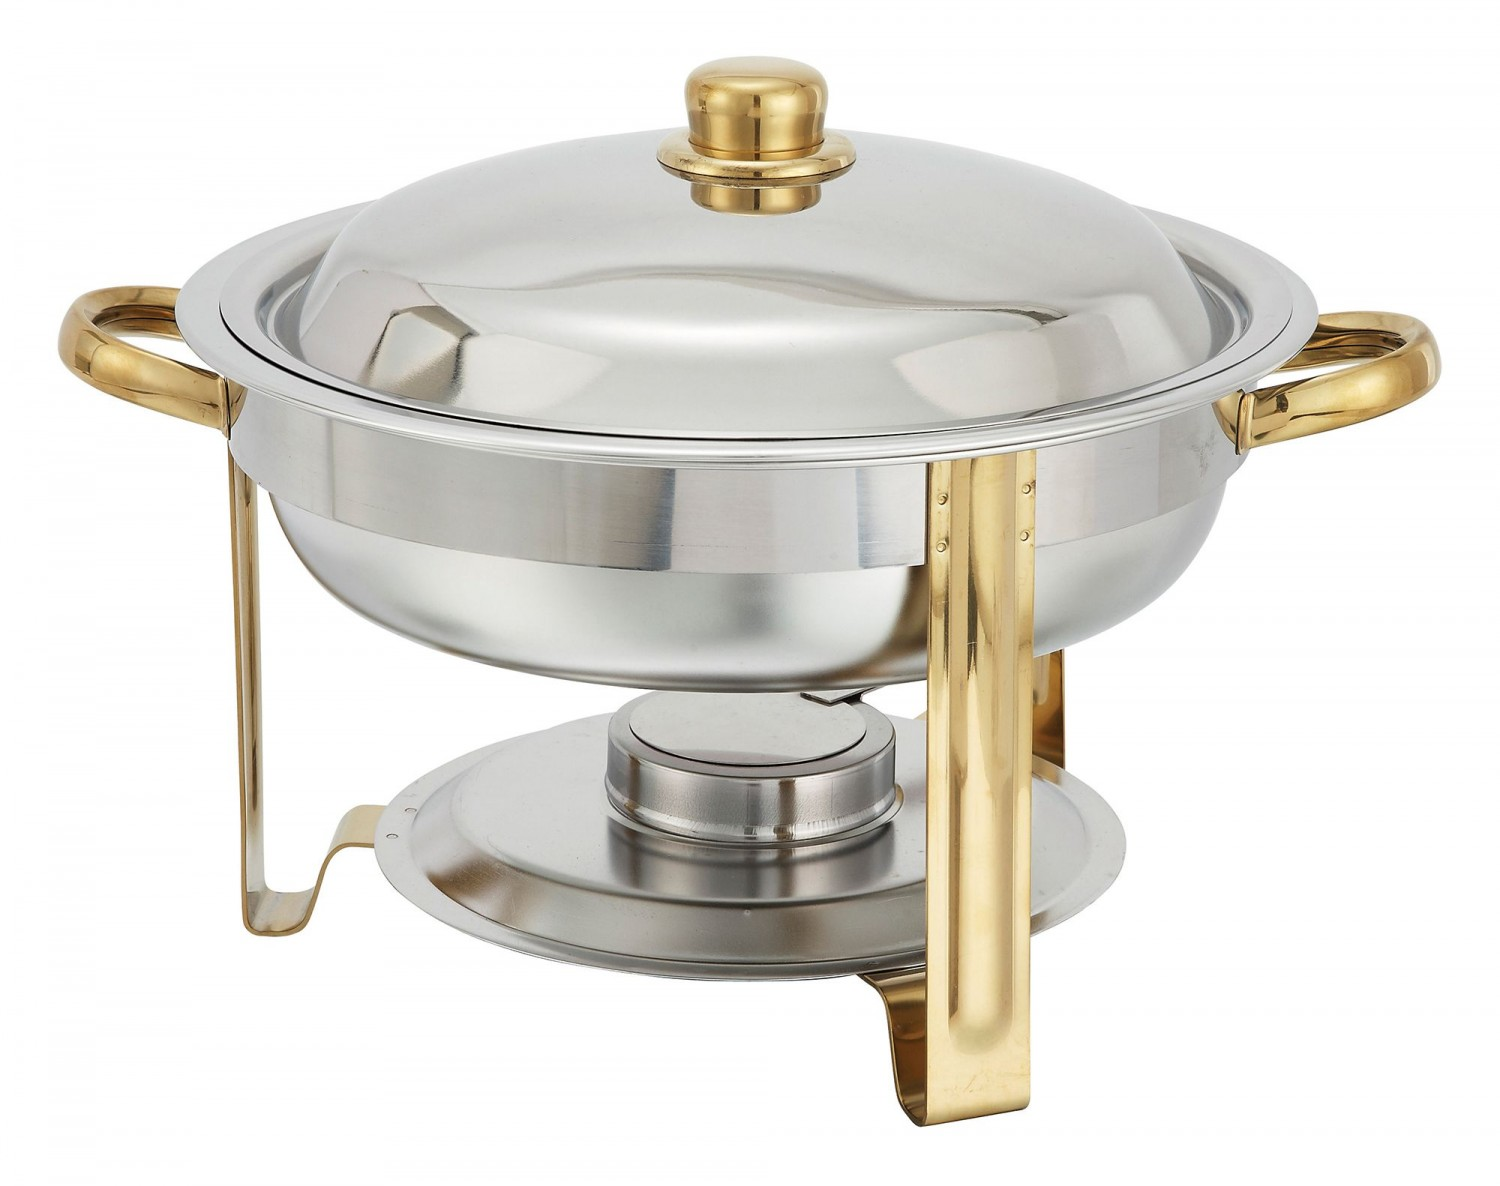 Winco 203 Round Stainless 4 Quart Chafer